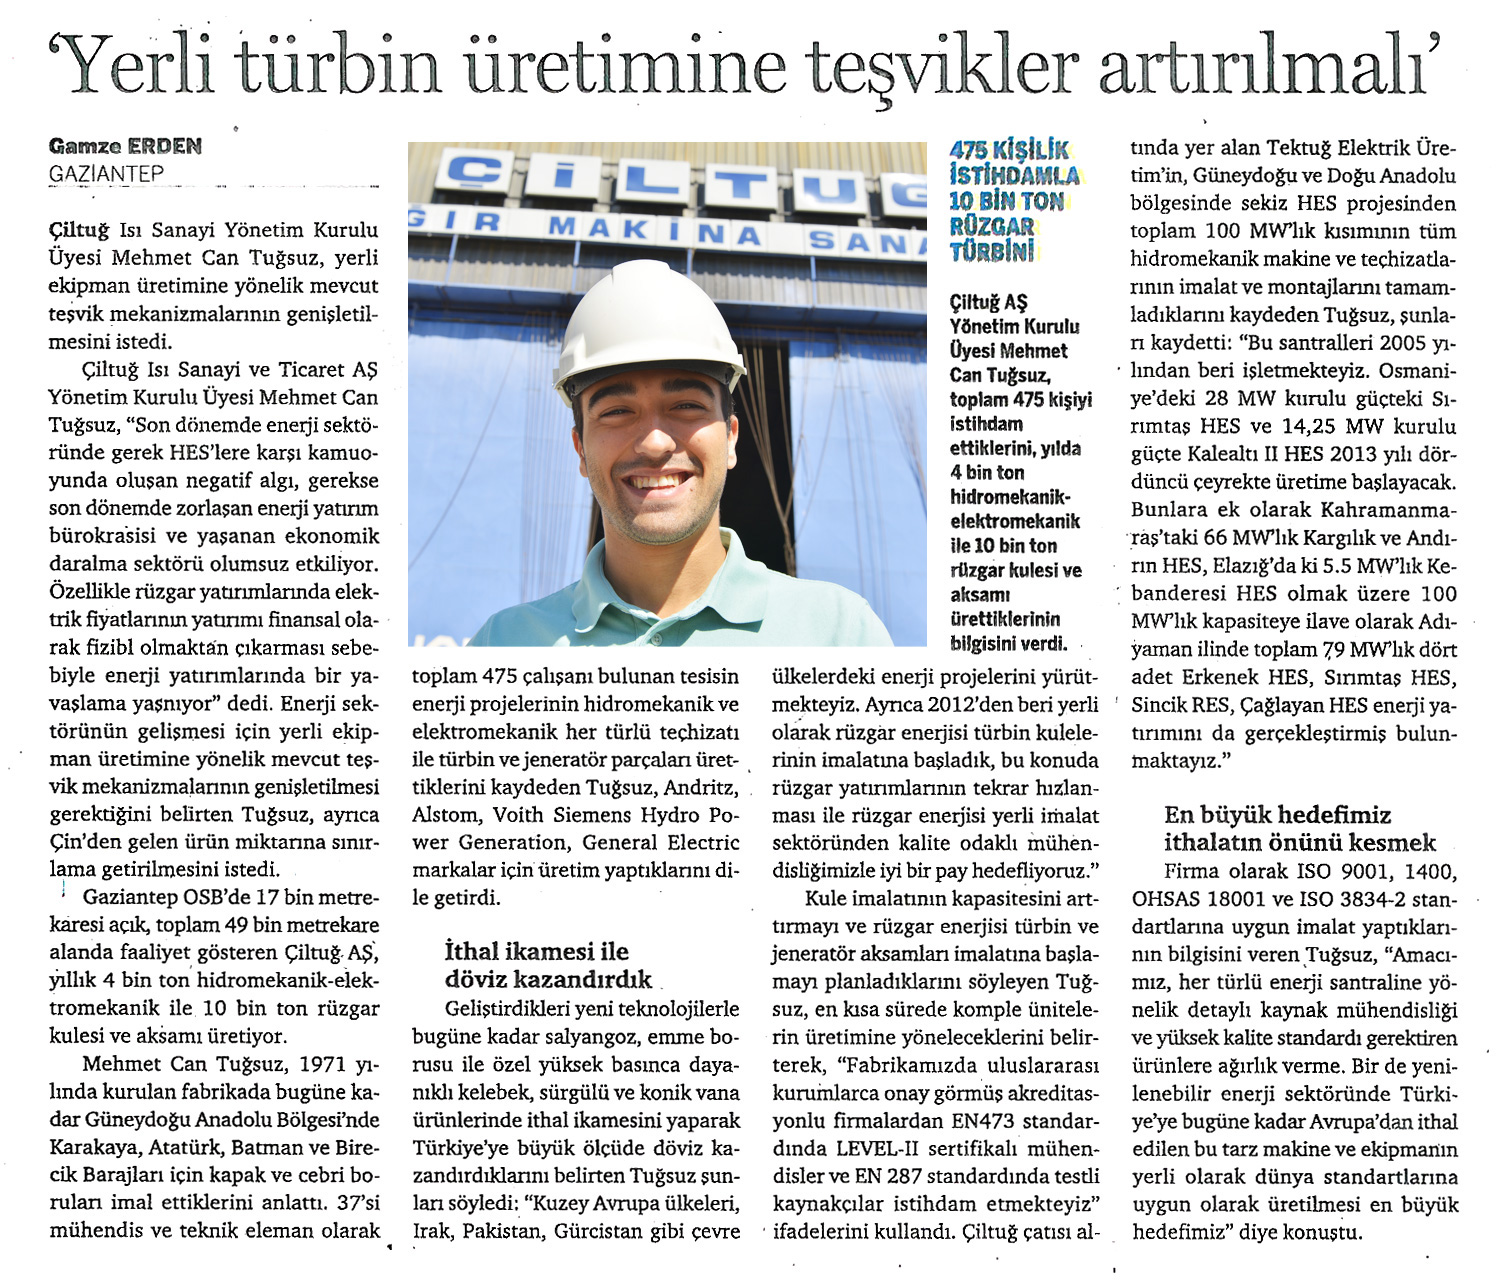 Incentives should be increased for production of new turbins